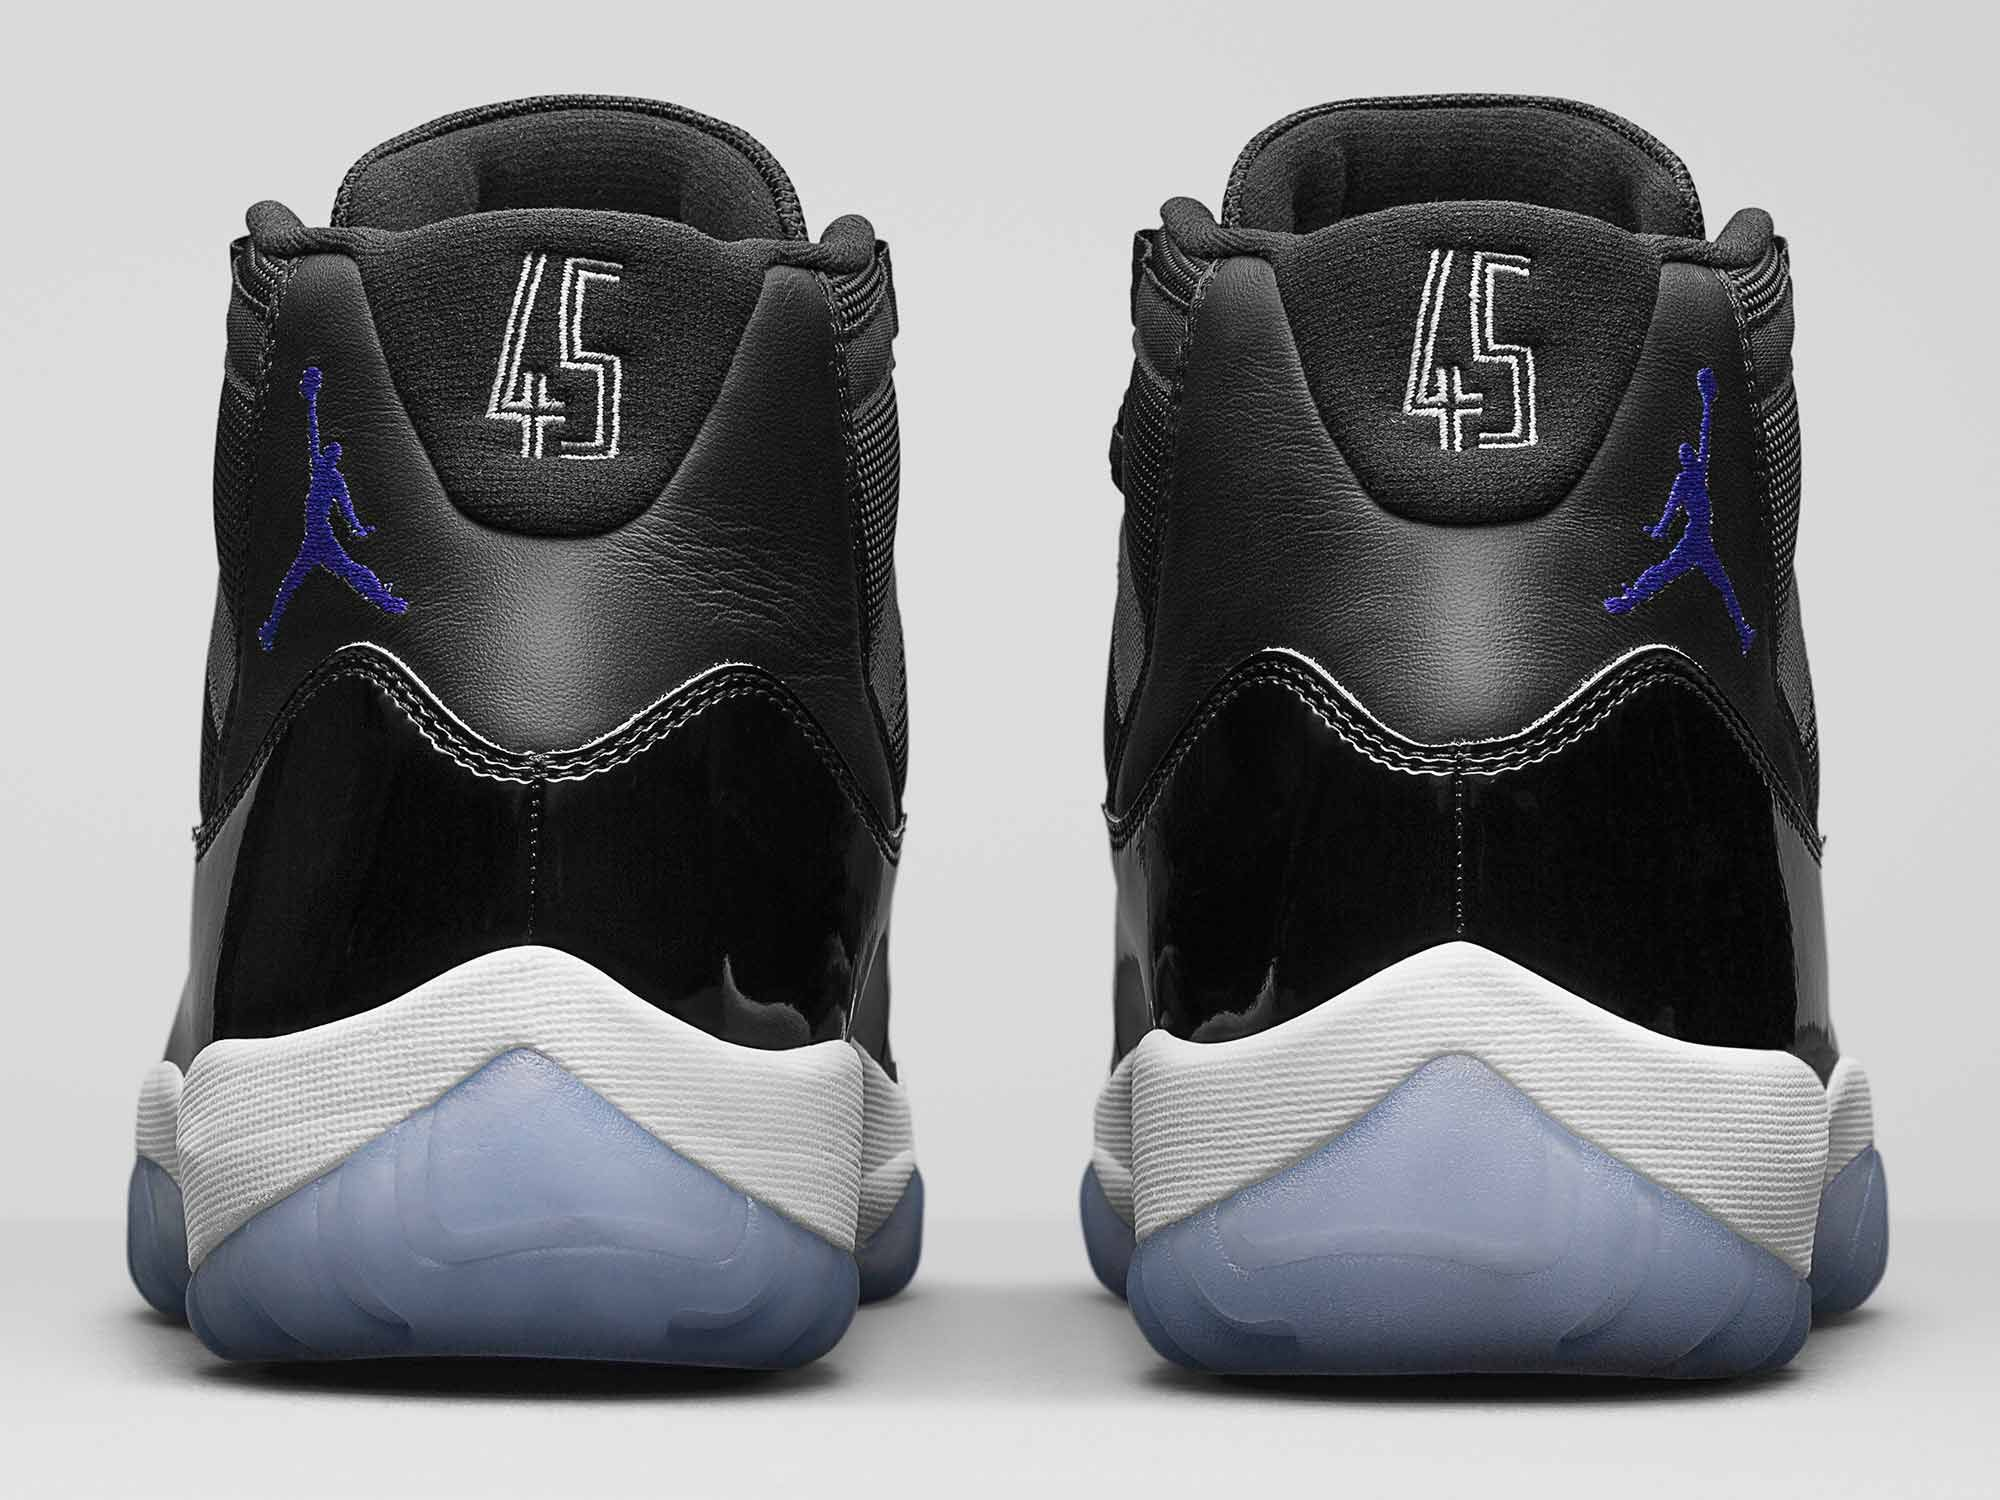 abc3d65174f Jordan Brand is going all-out for the 20th anniversary of Space Jam. The  Crossover goes behind the scenes of Jordan s new Space Jam commercial and  tal